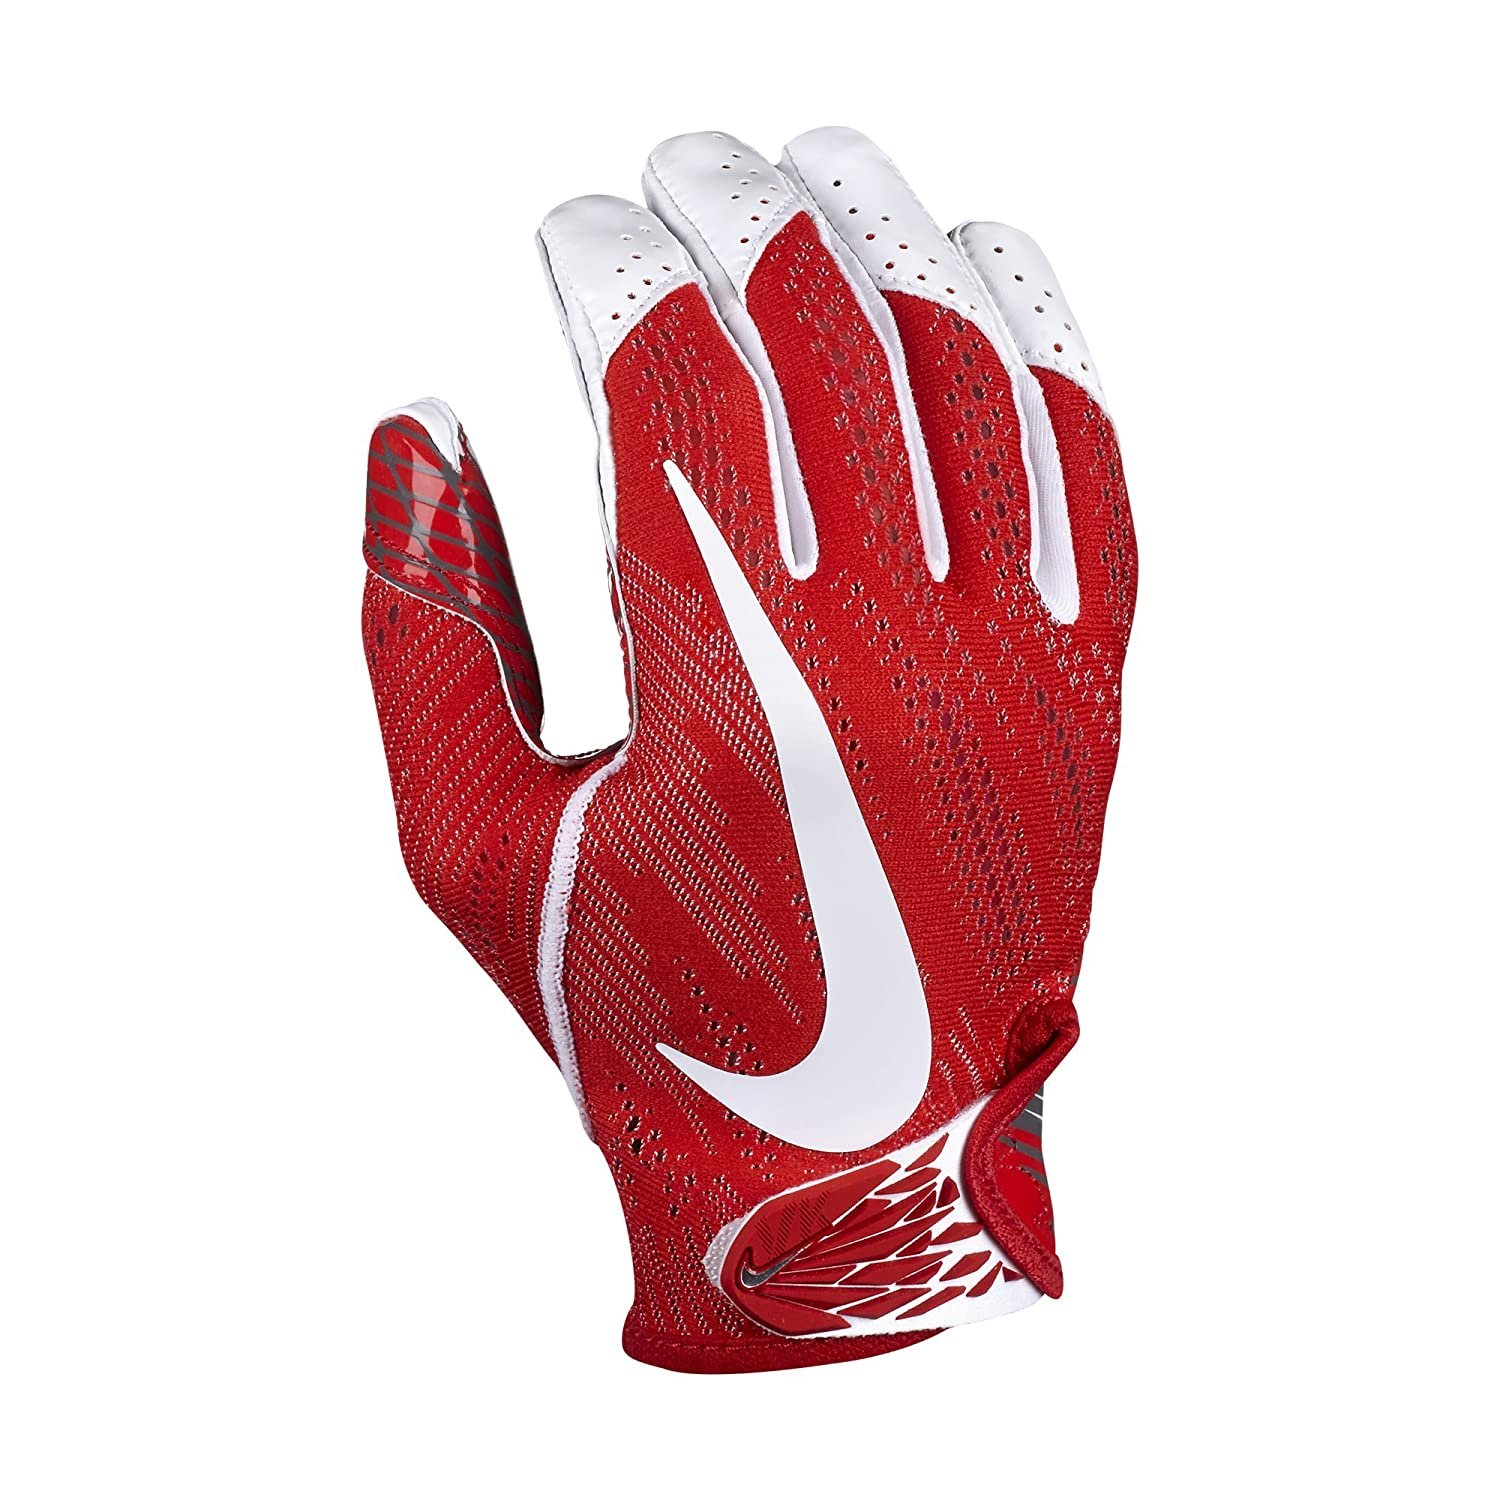 1ded7dd93a3 Amazon.com   Nike Adult Vapor Knit 2 Receiver Gloves Size Medium (ReD